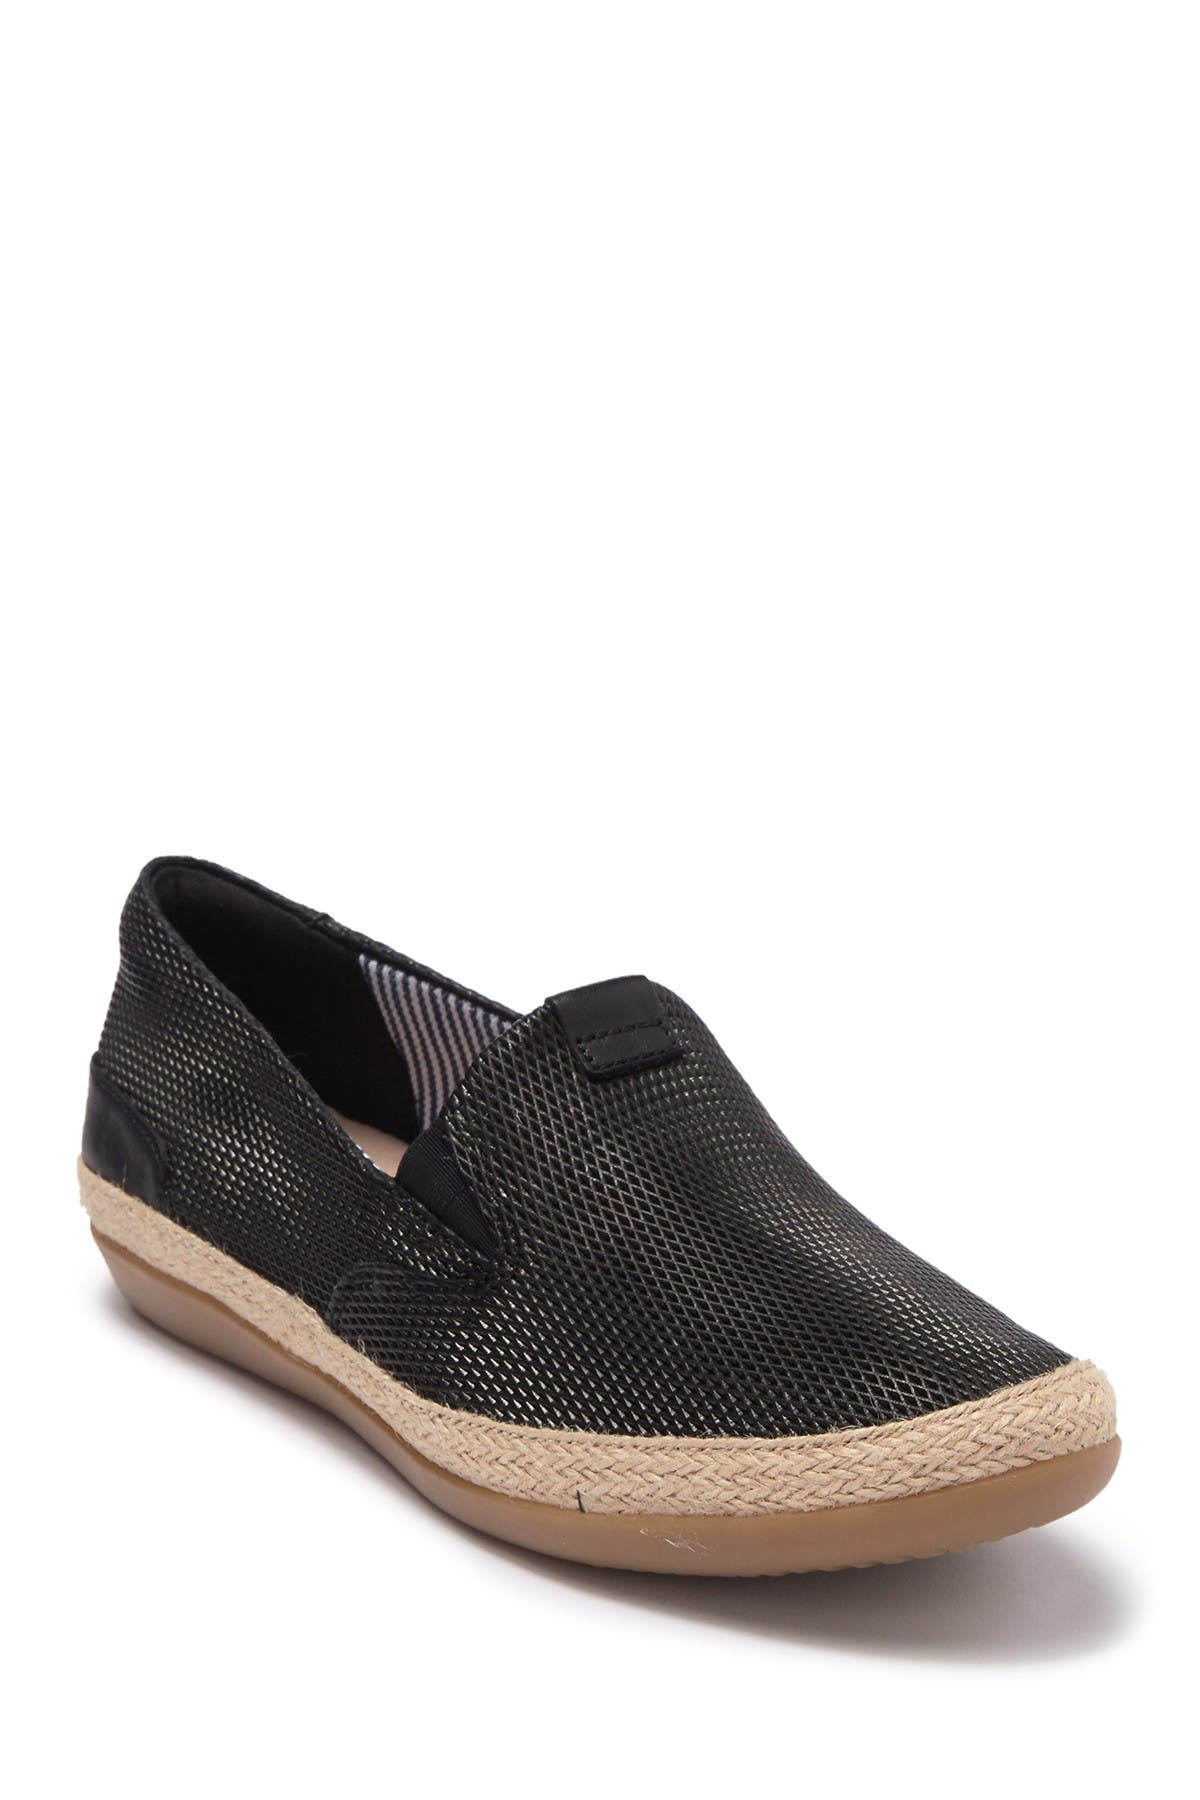 Danelly Iris Perforated Leather Slip-On